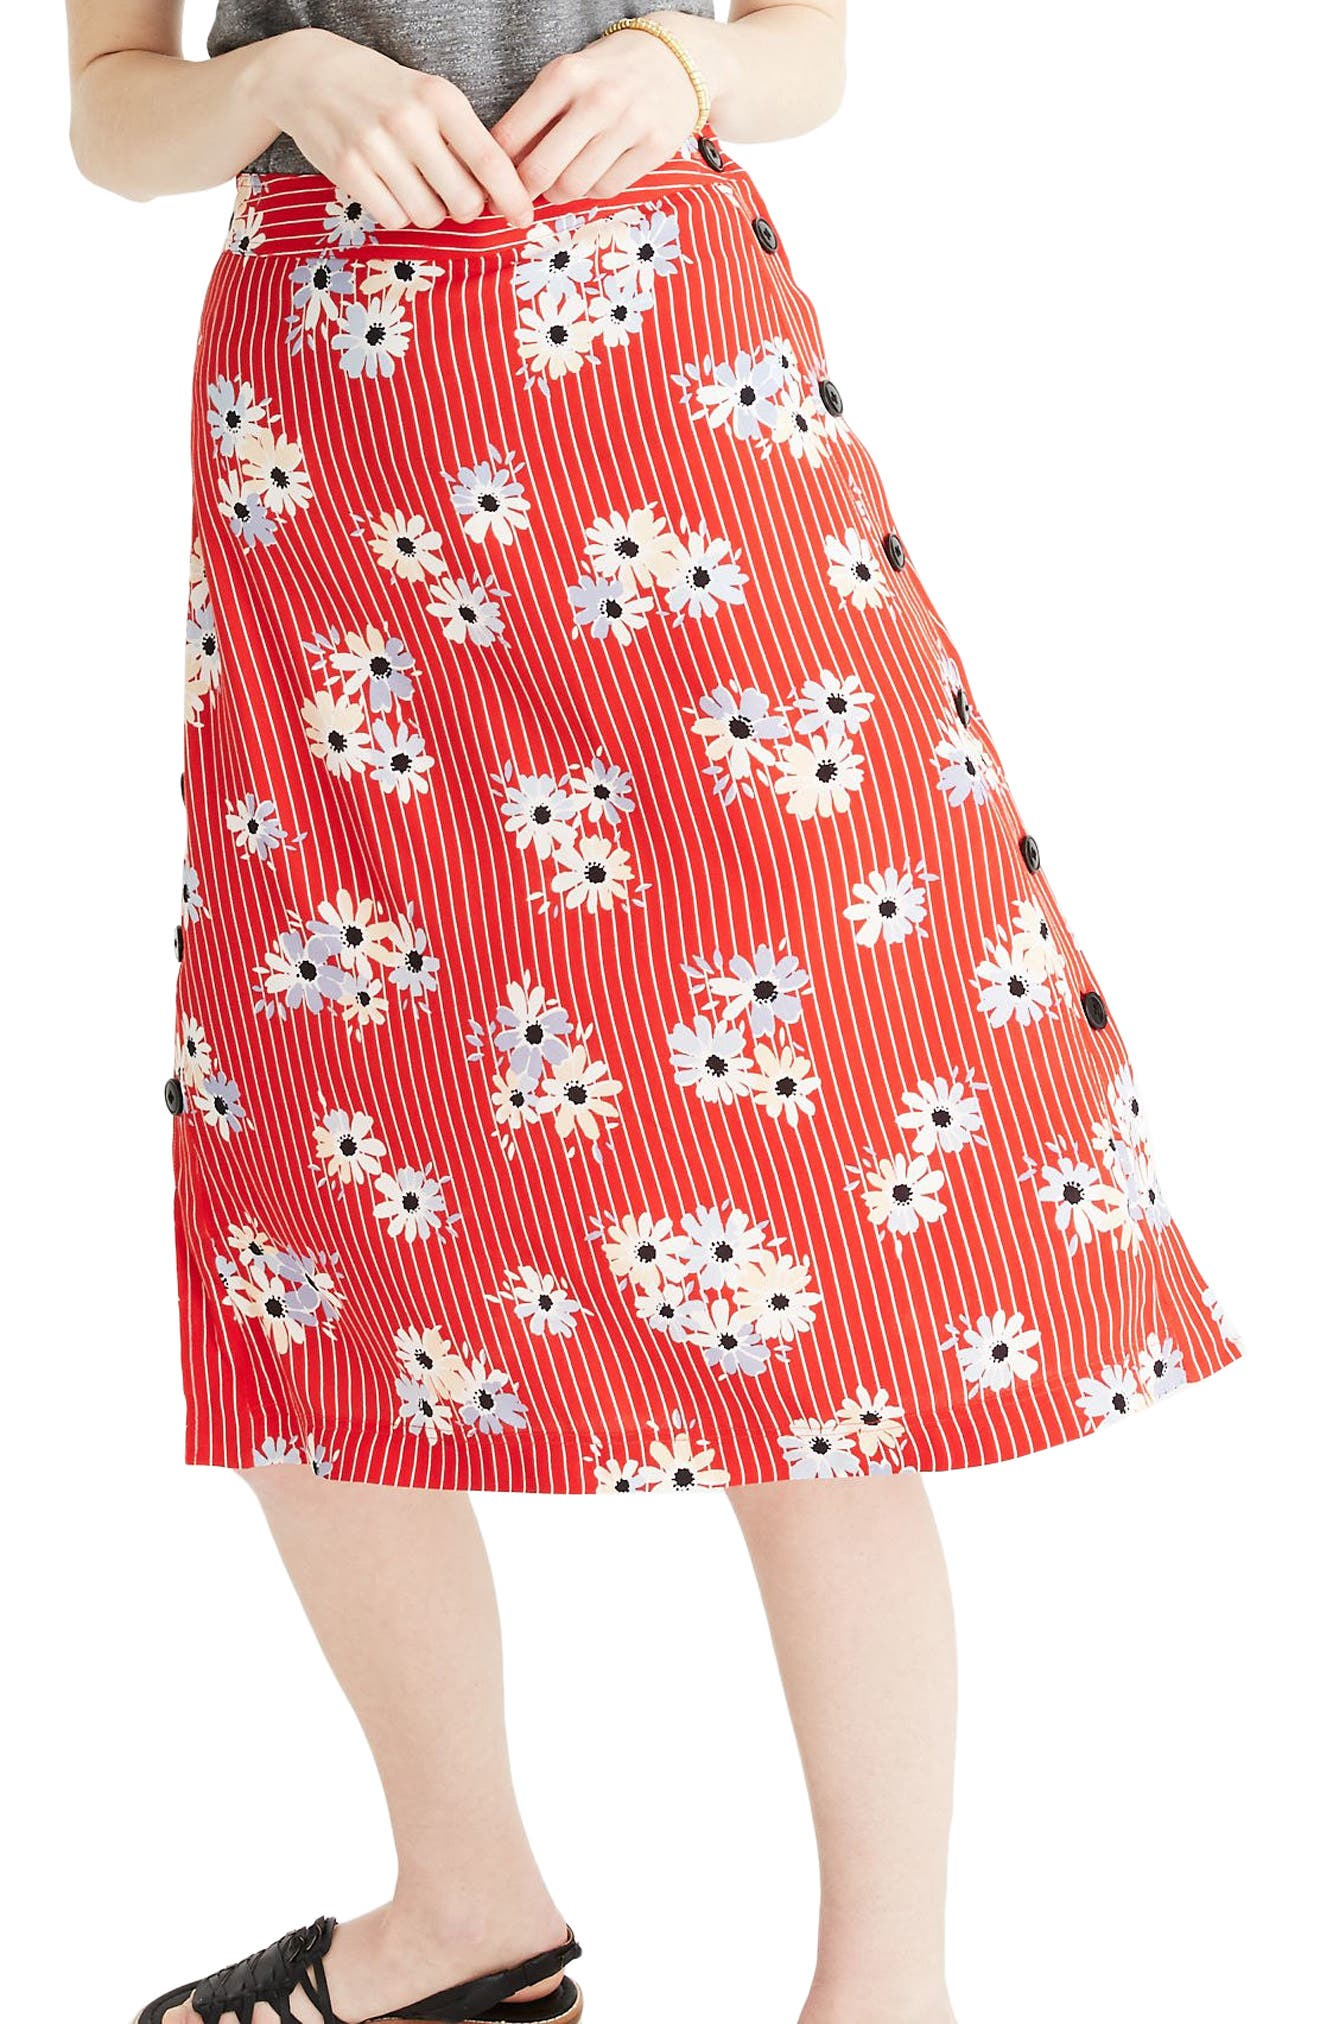 677ce4d50 Buy madewell skirts for women - Best women's madewell skirts shop -  Cools.com